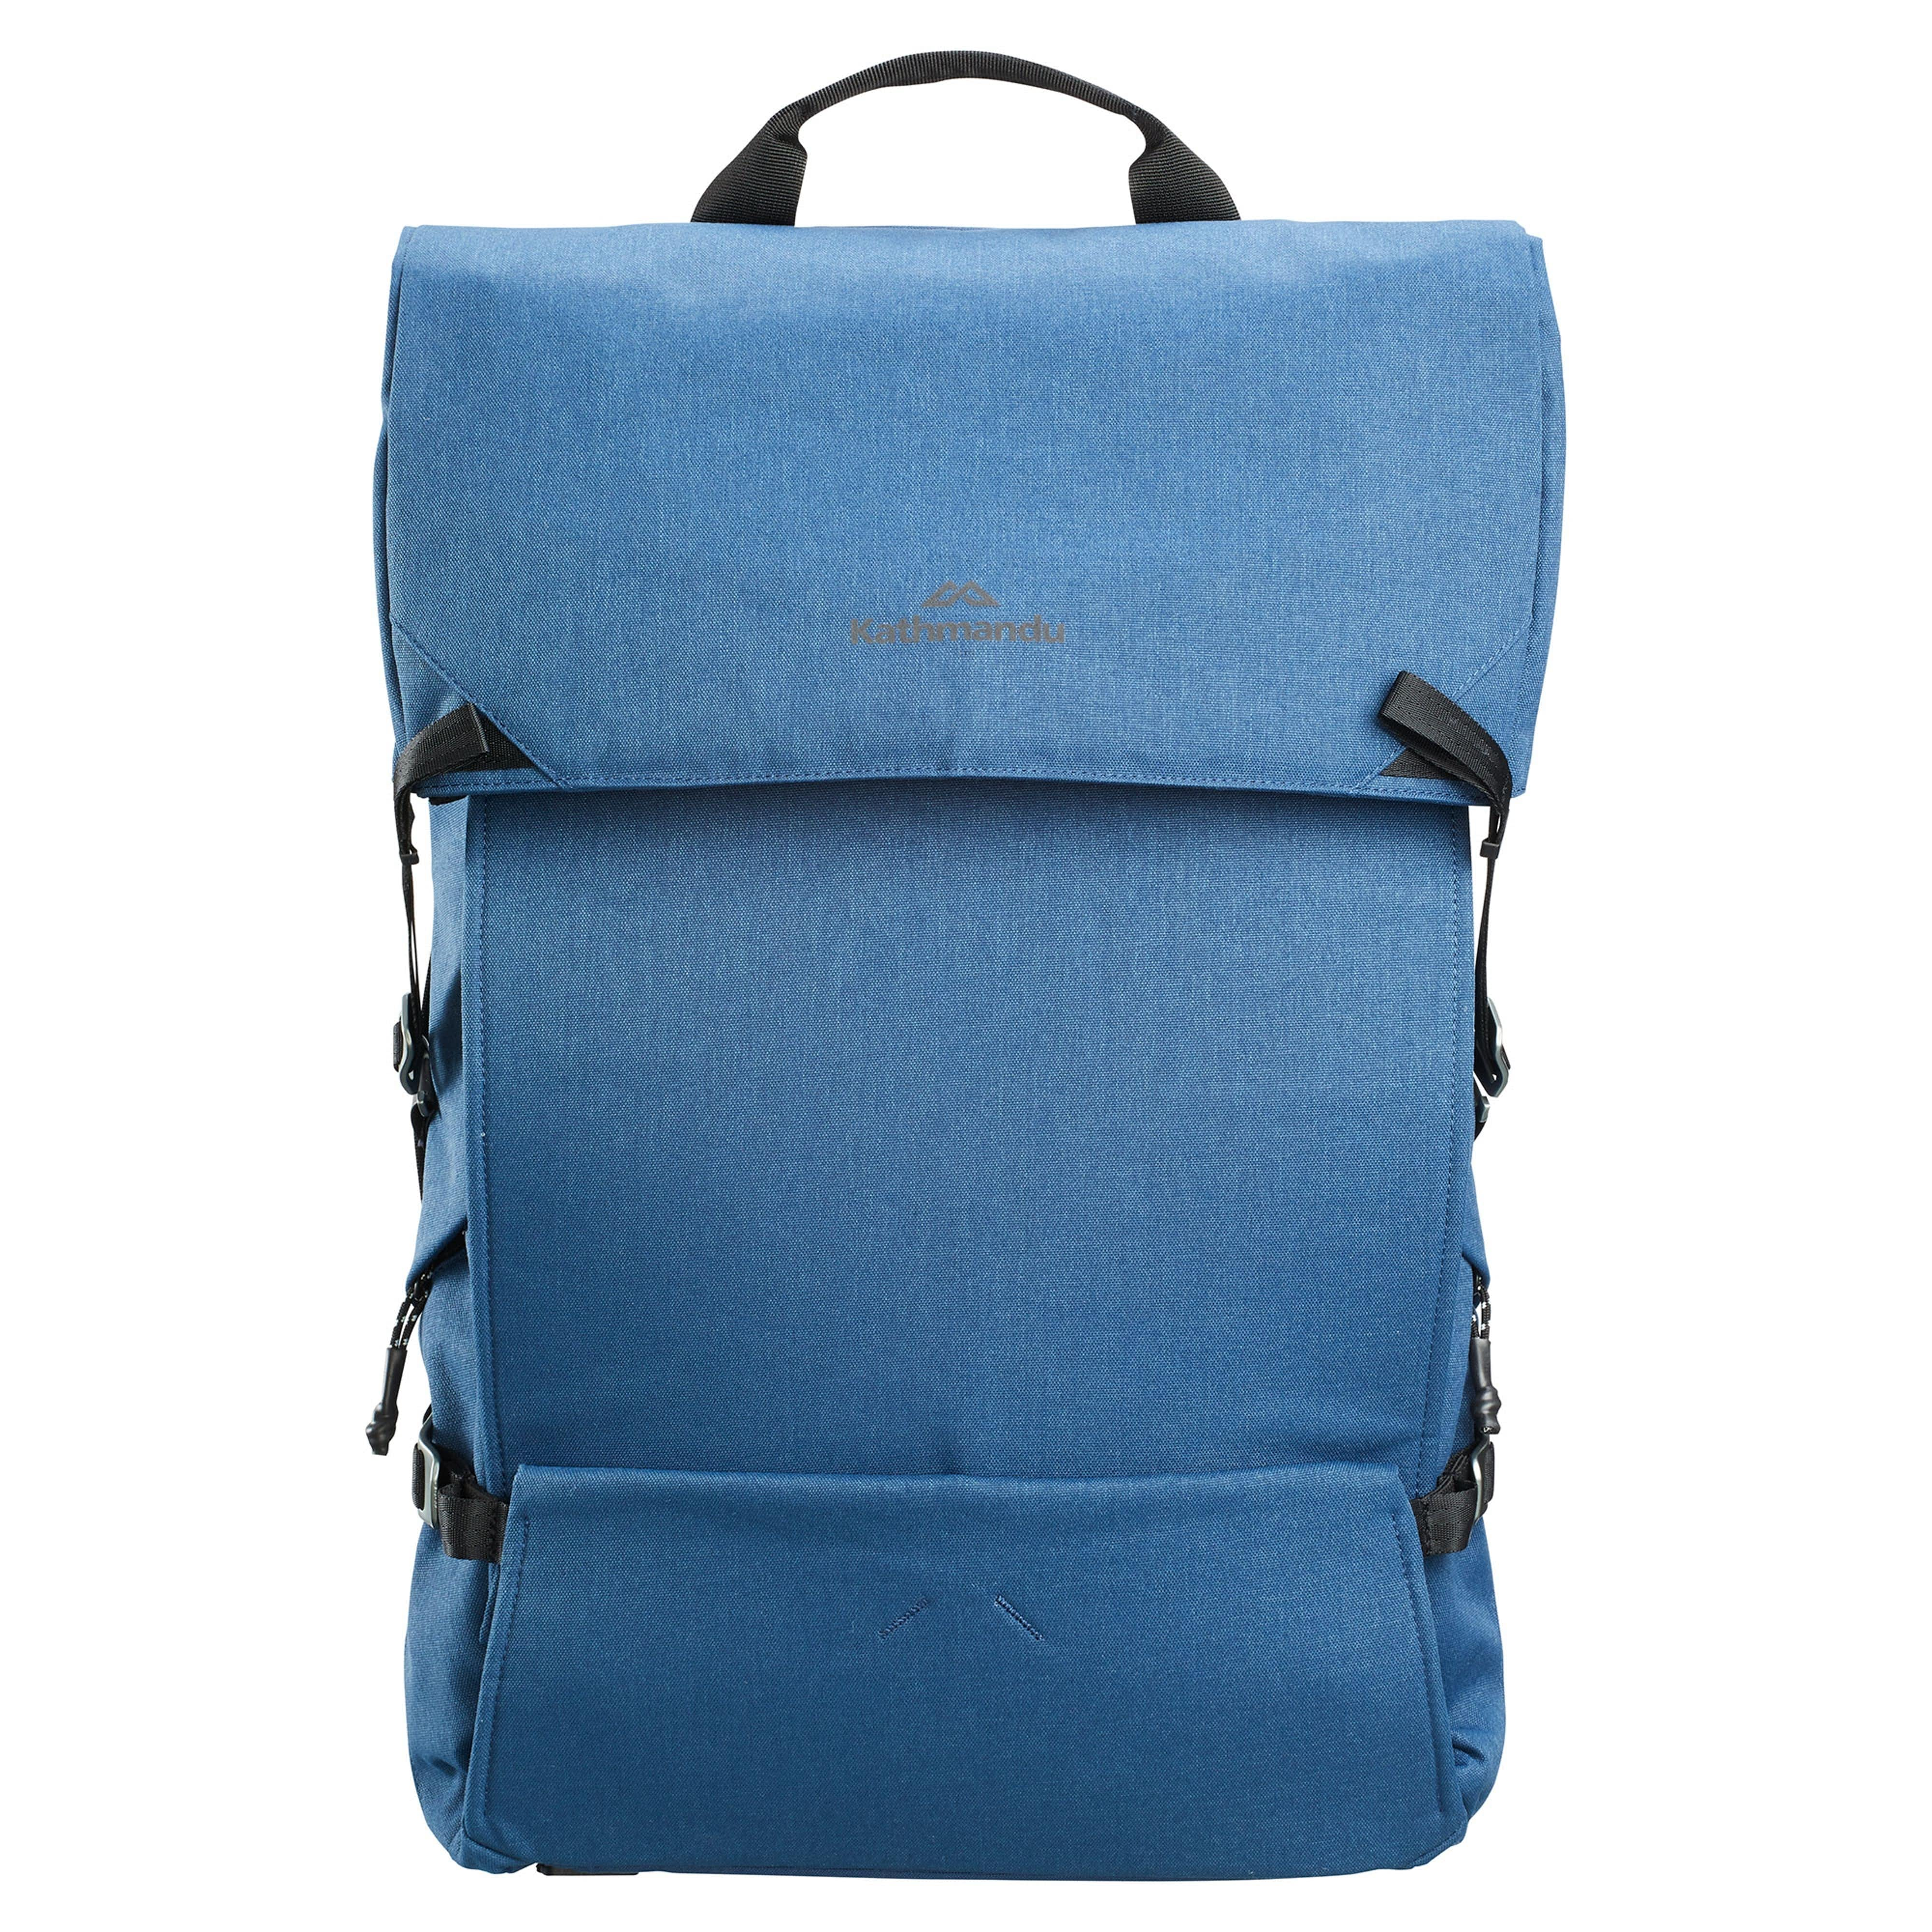 2f59f16a2005 Travel Bags for Men   Women for Sale Online